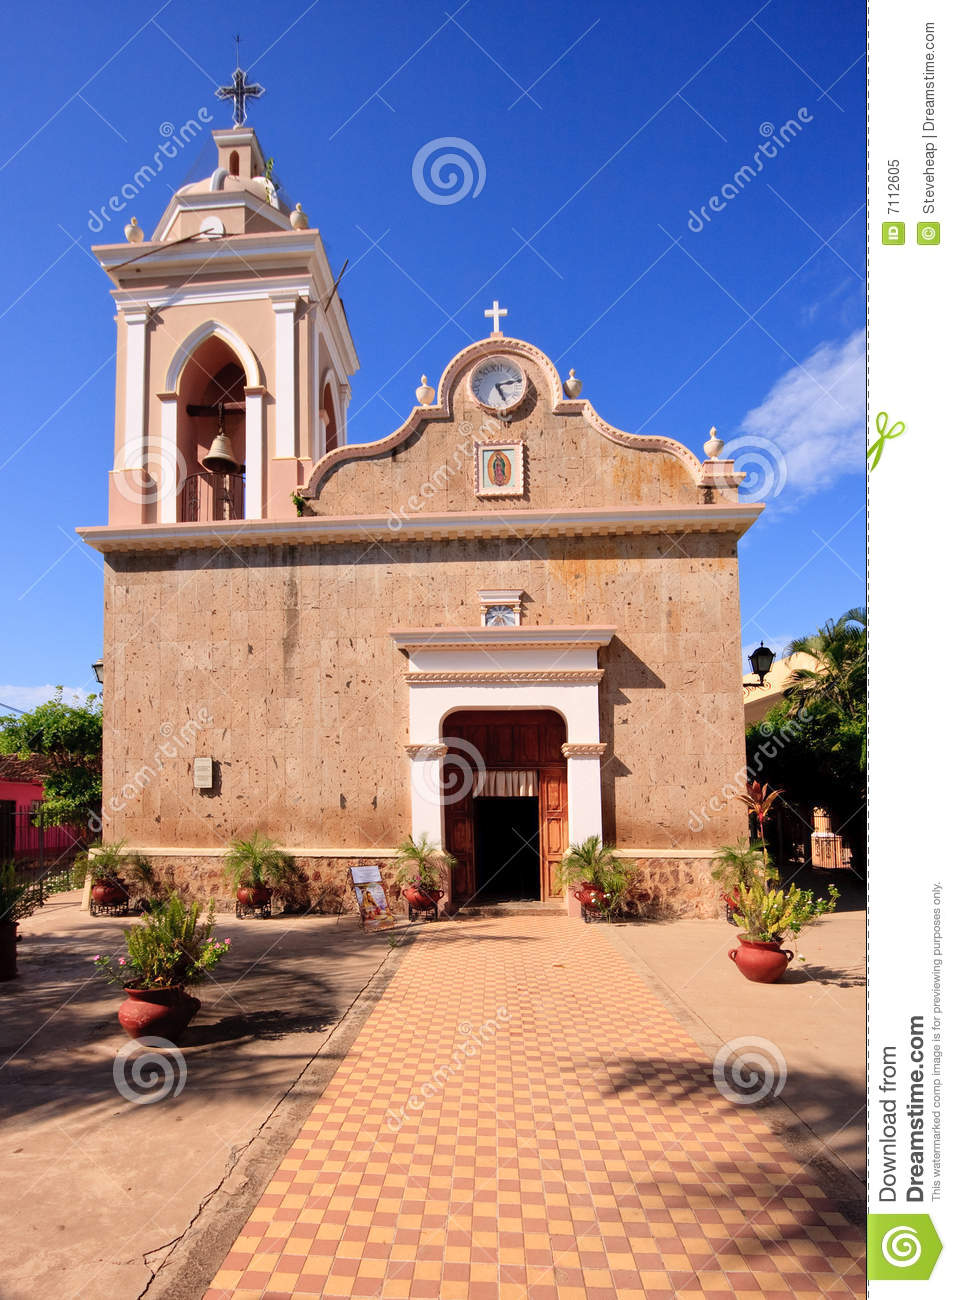 Front view of El Quelite Church in Mexico